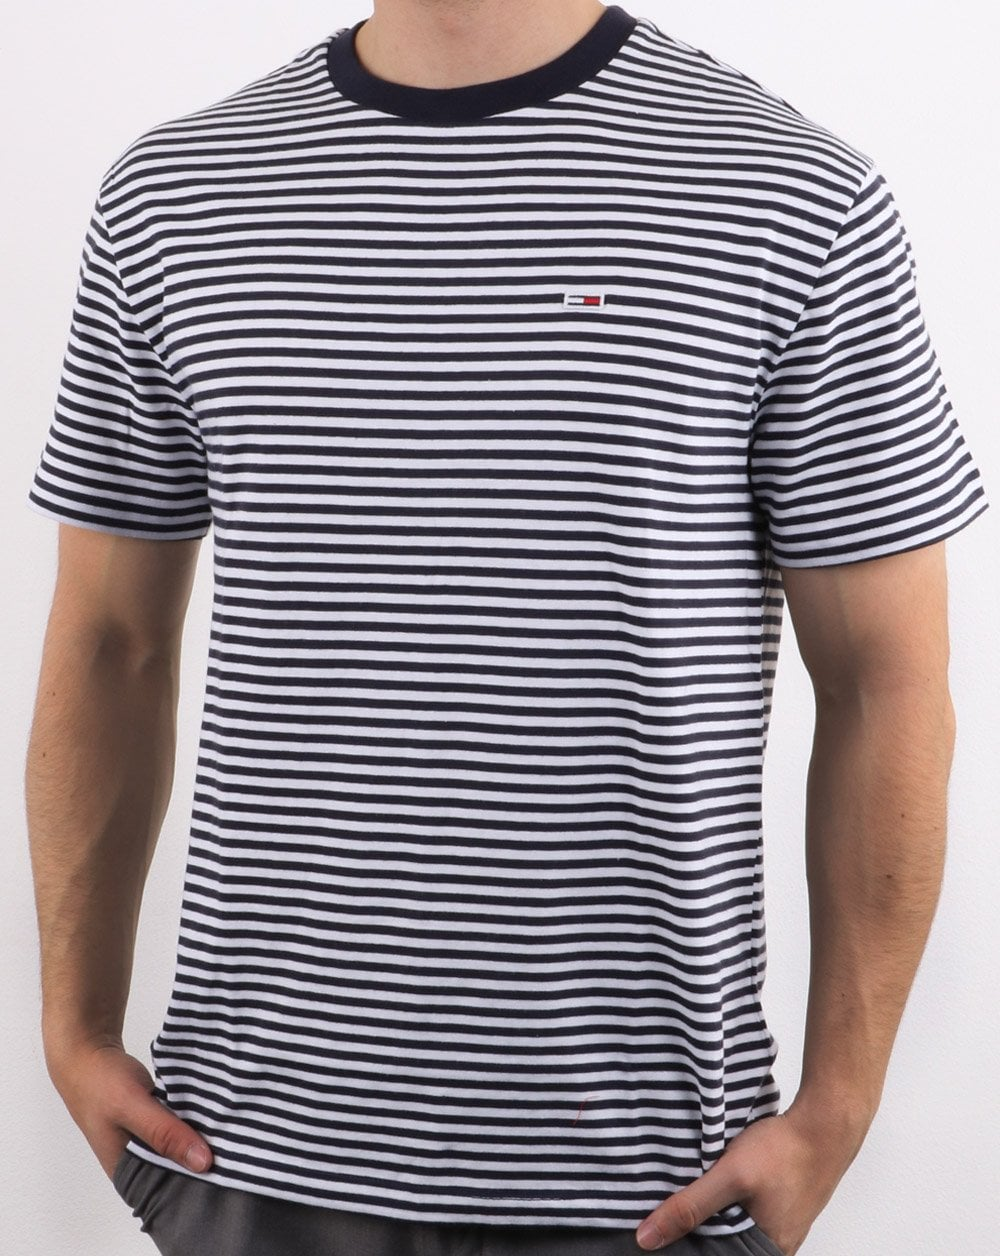 8ae597d4 Tommy Hilfiger Striped T Shirt in Navy and White | 80s Casual Classics